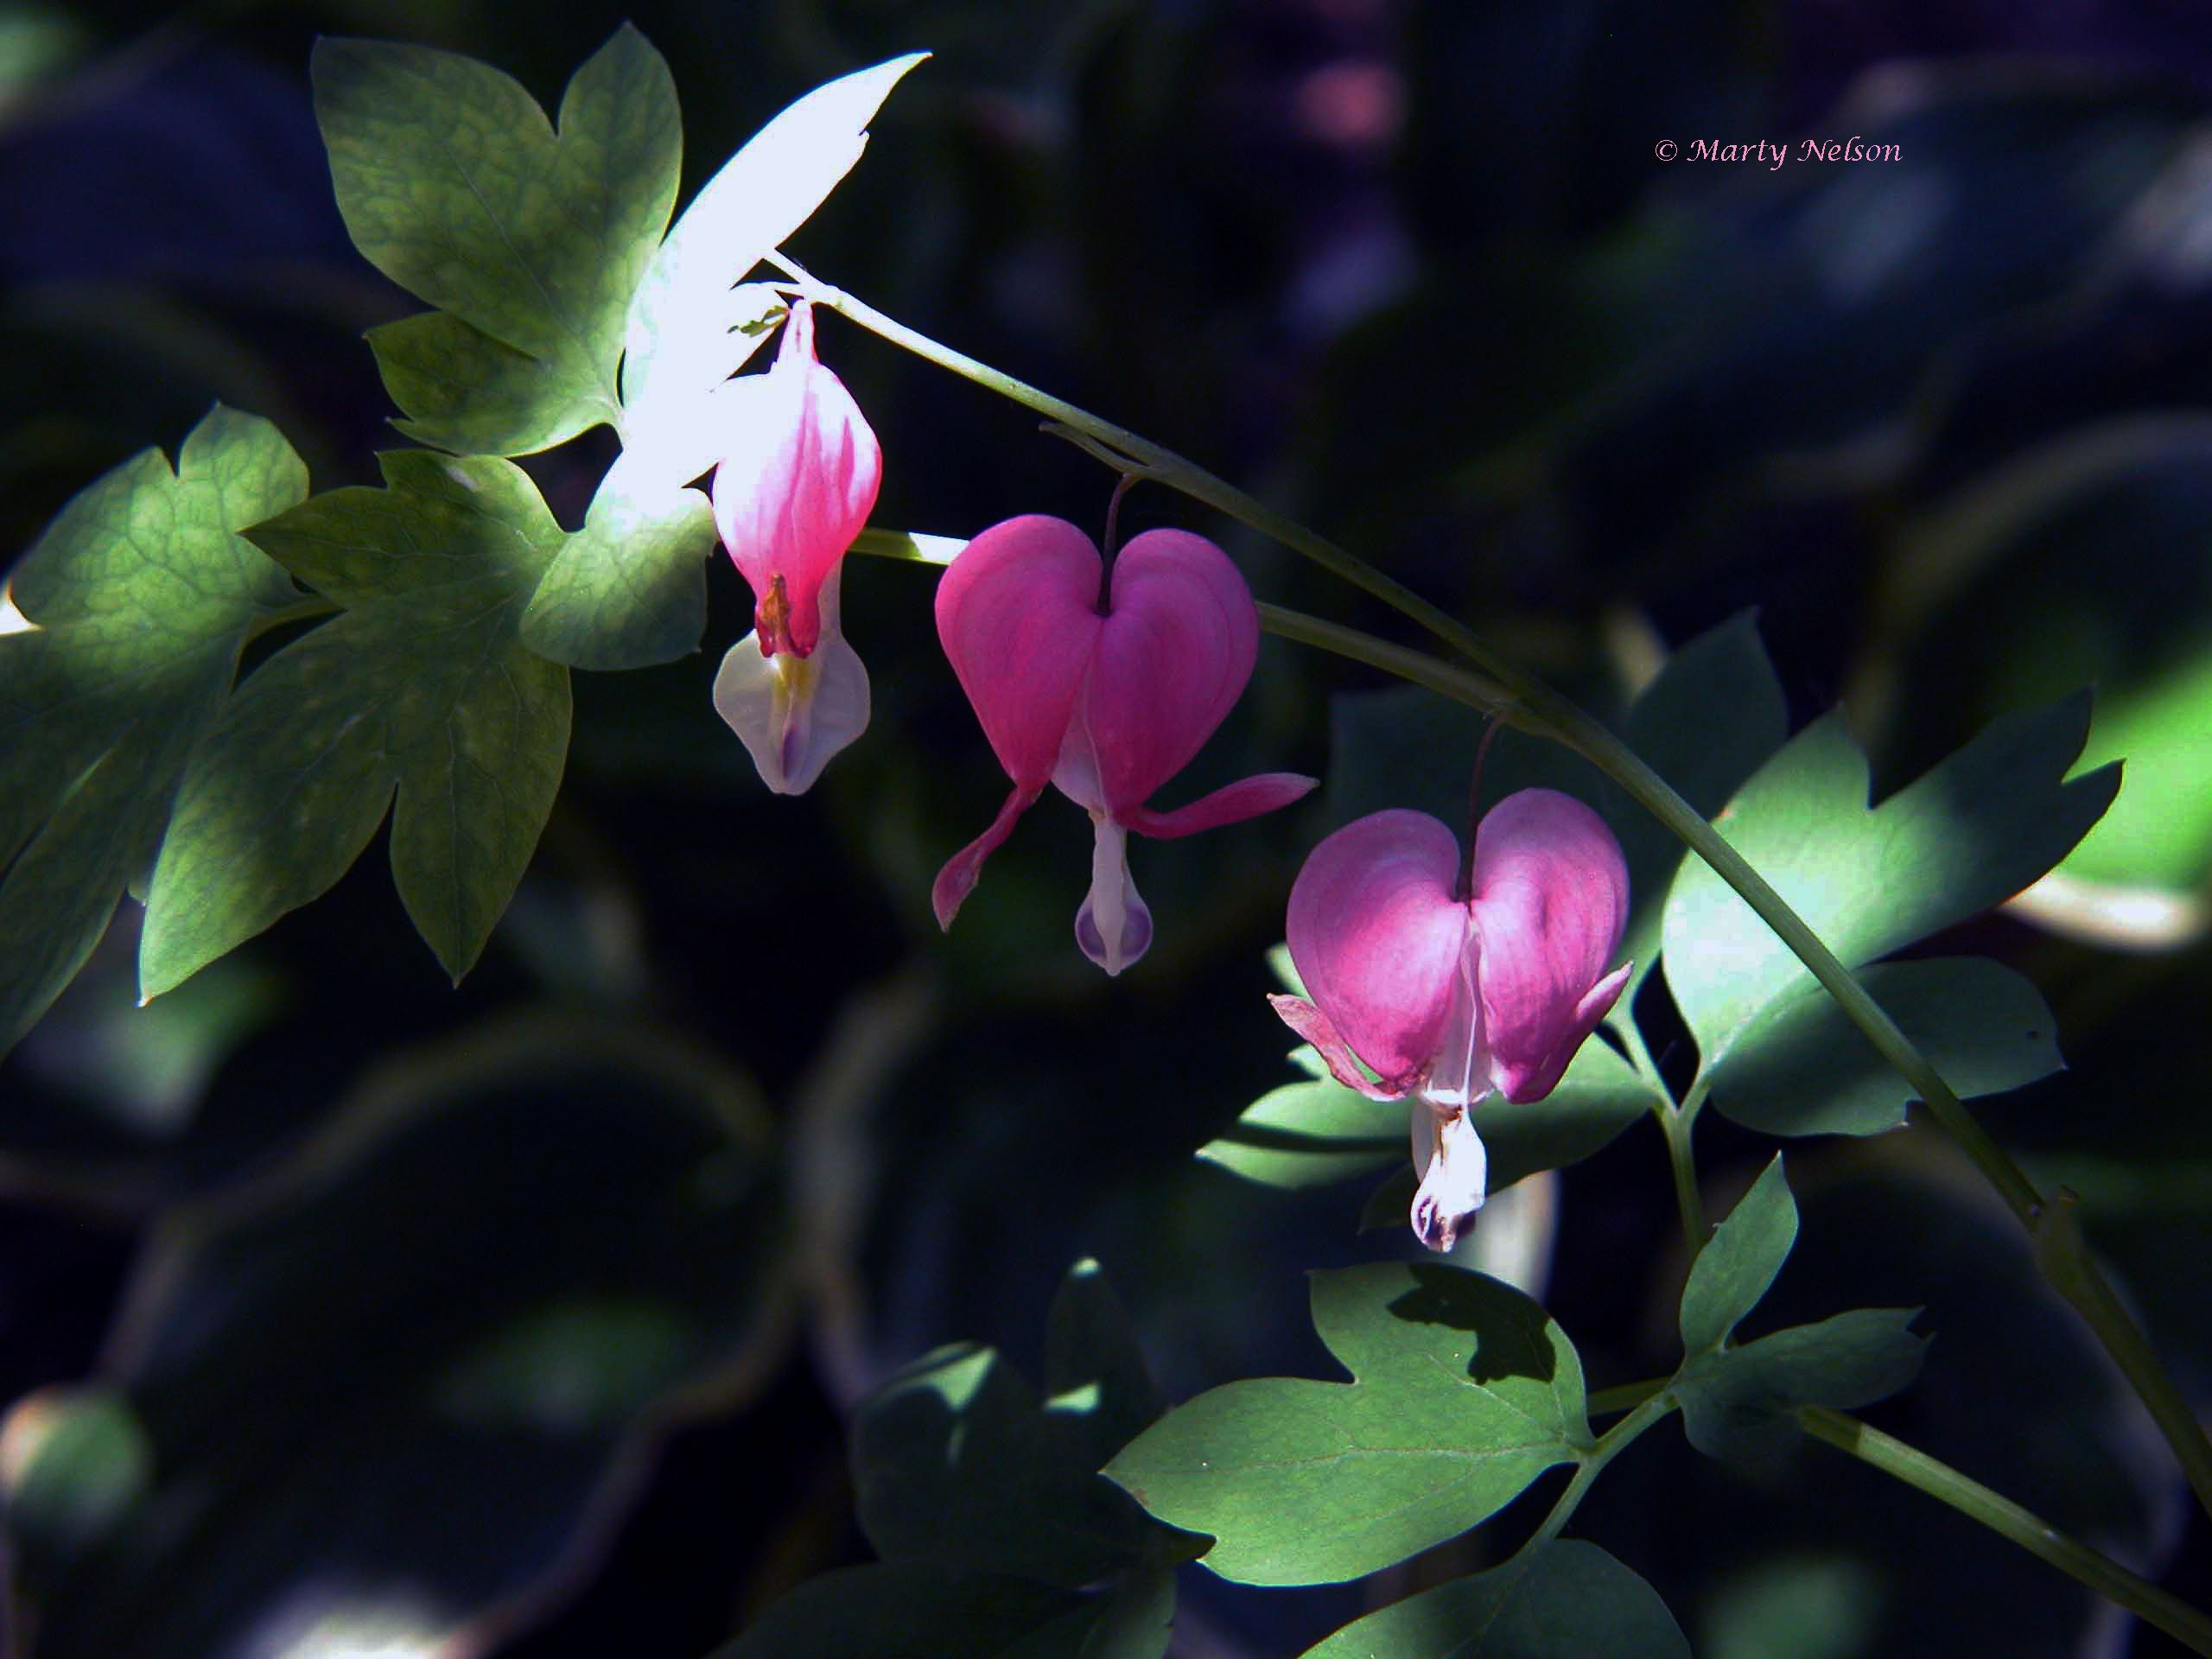 Bleeding heart plant copyright by marty nelson website